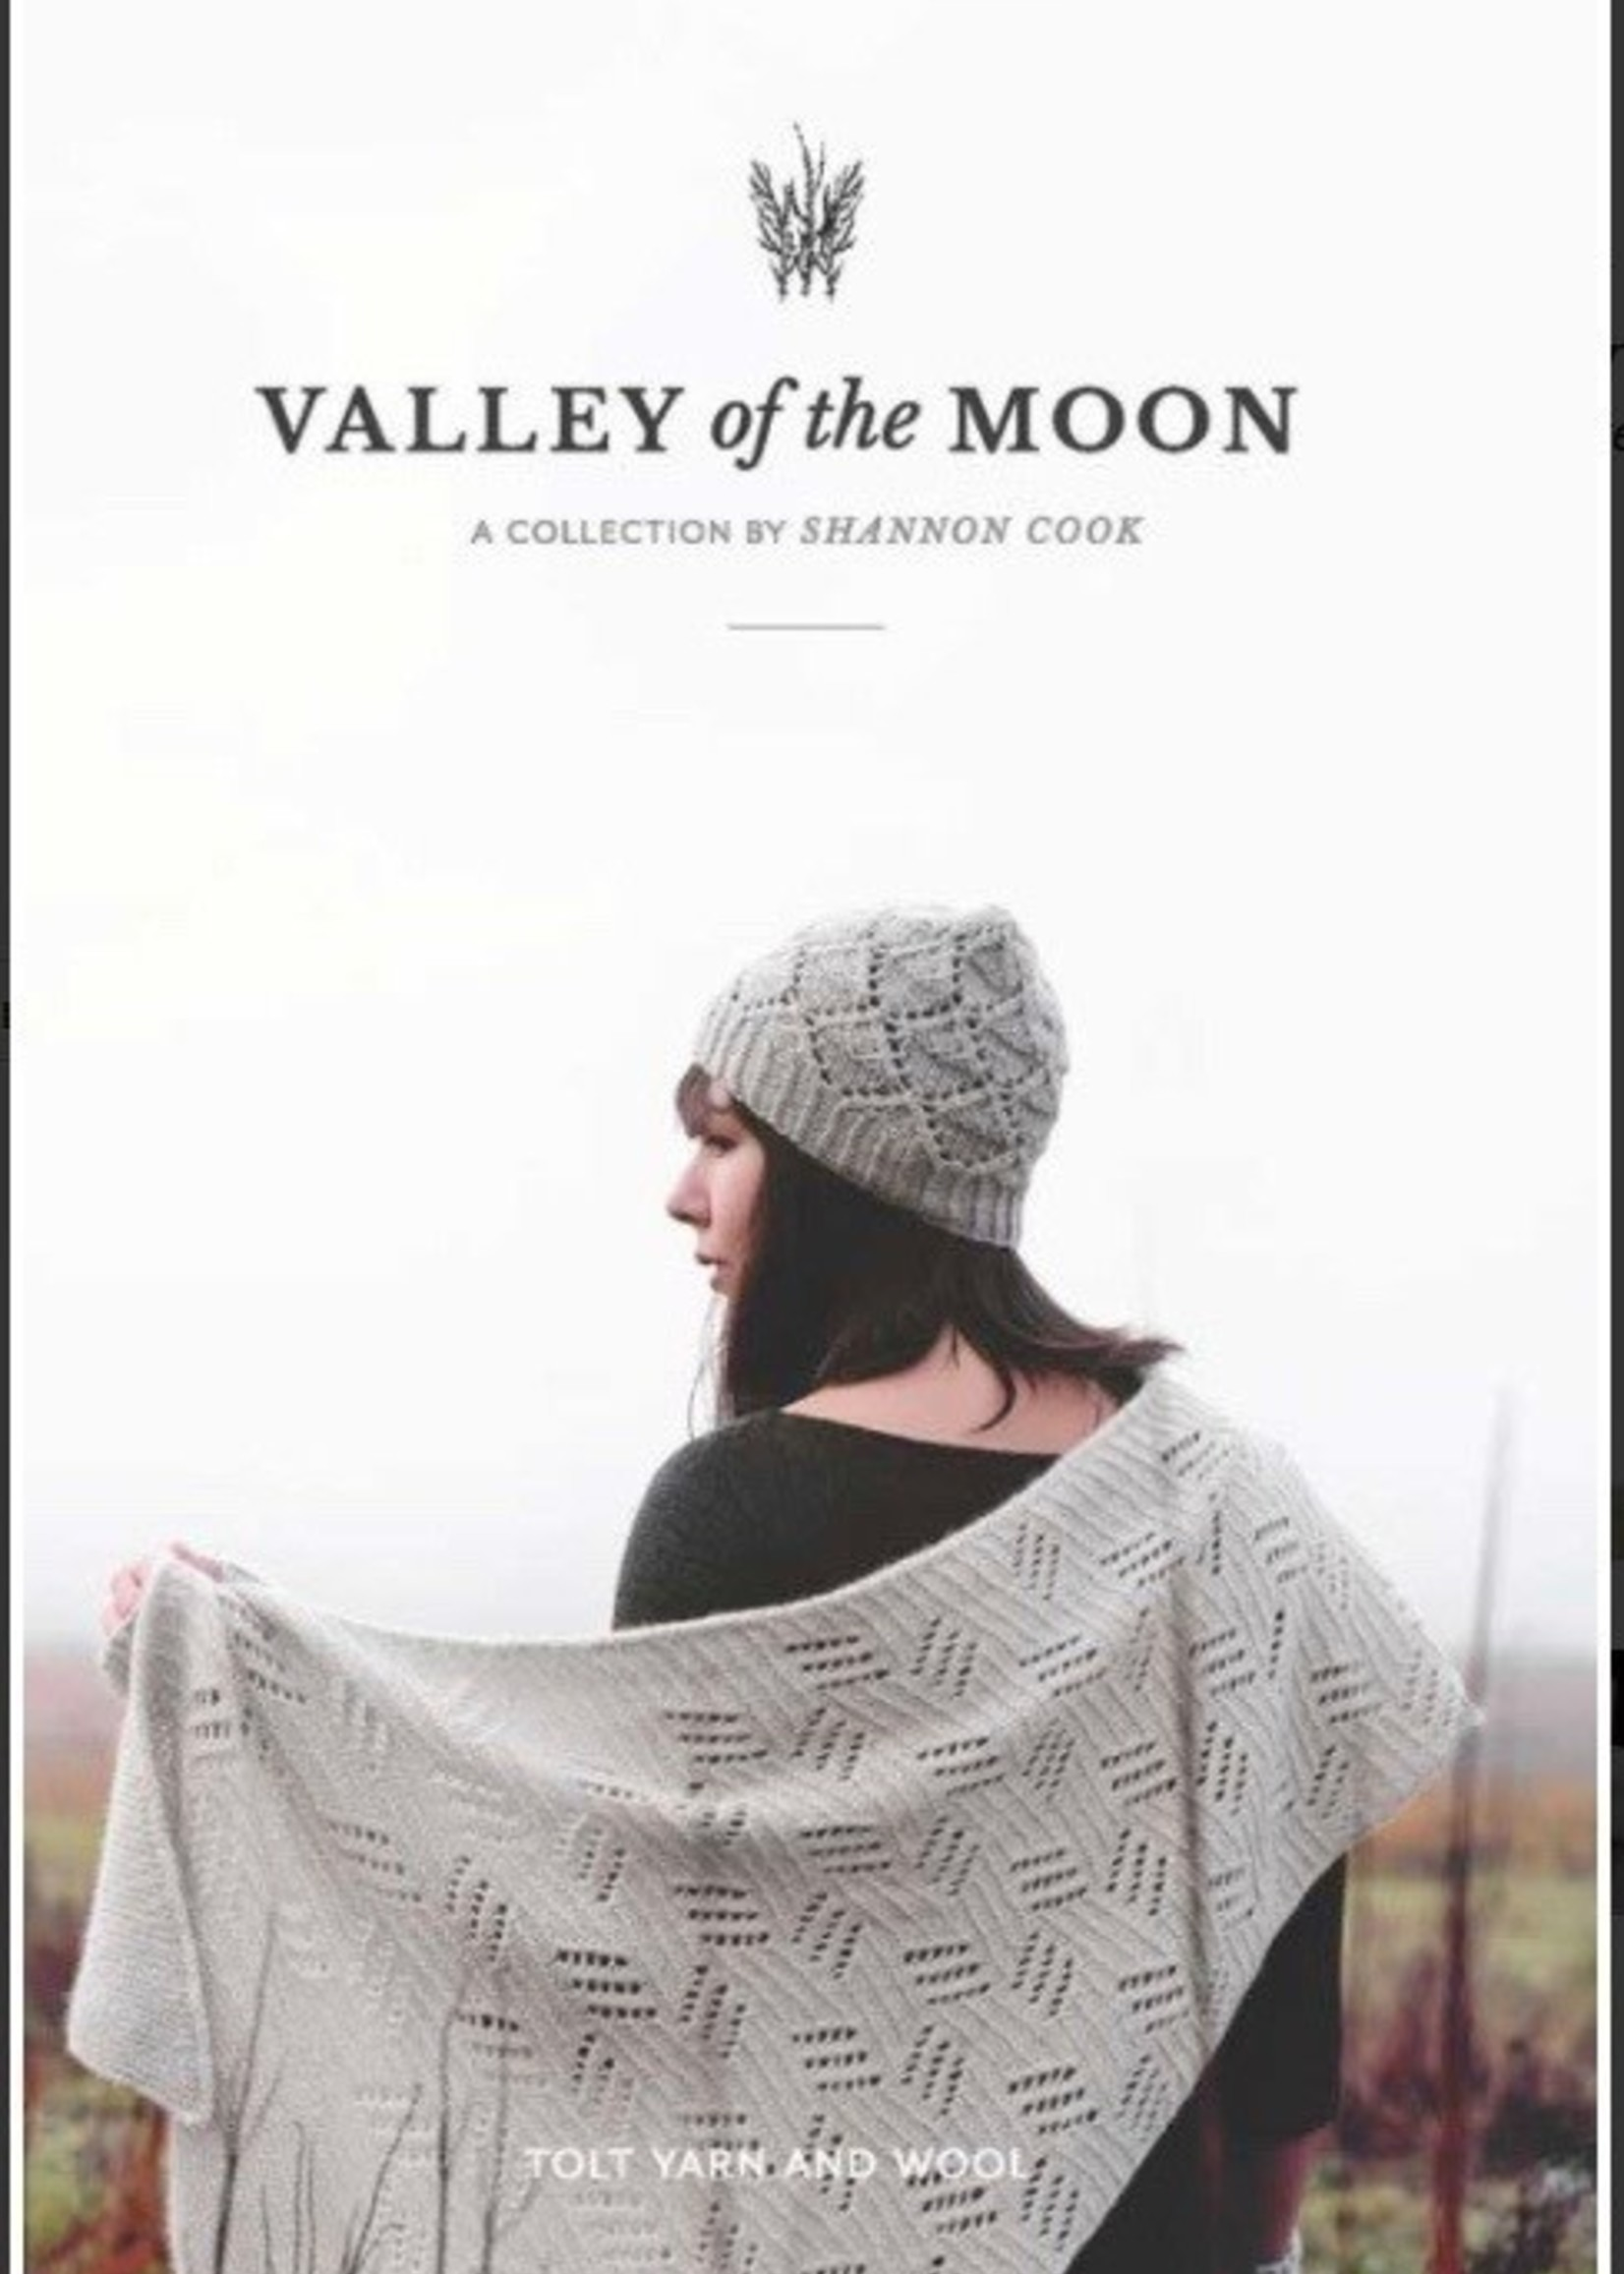 Valley of the Moon by Shannon Cook